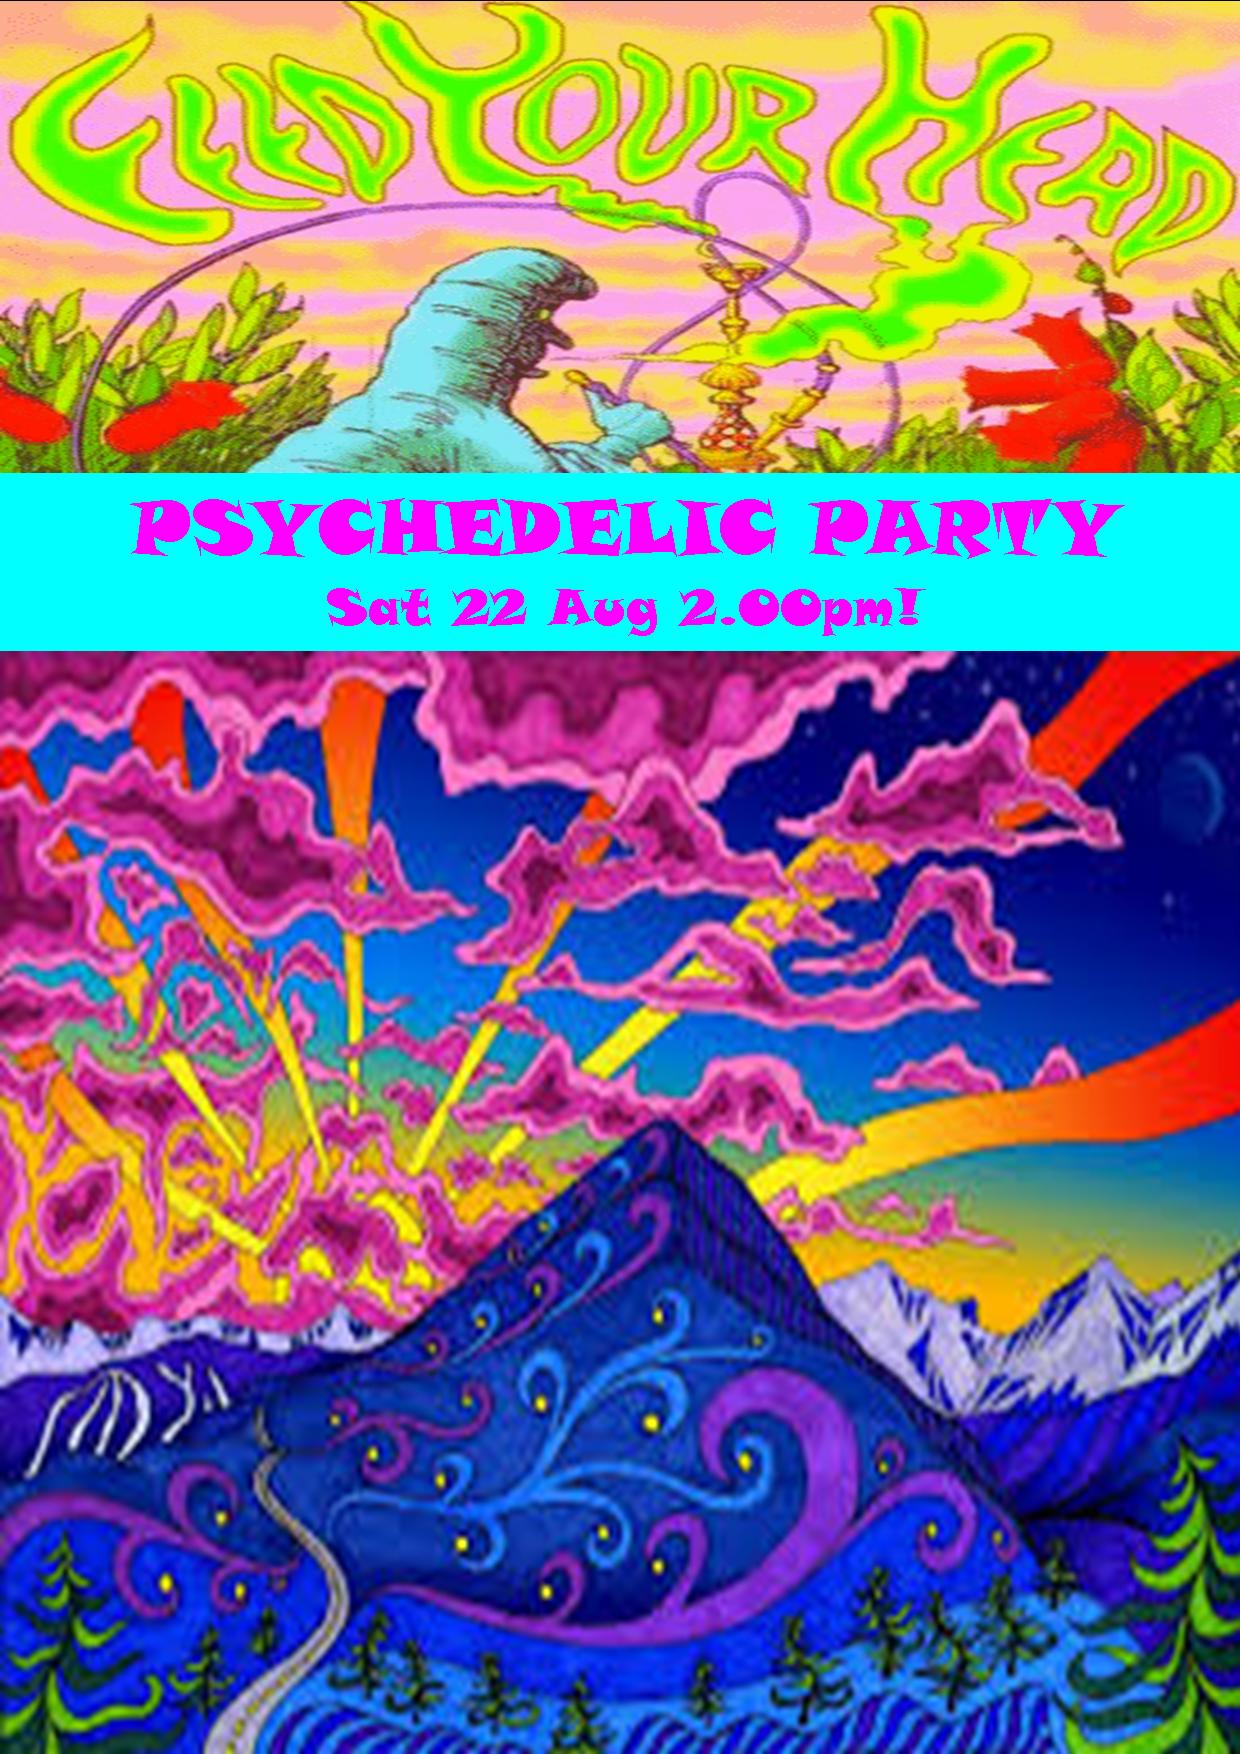 PSYCHEDELIC PARTY SAT 22 AUG 2.00PM